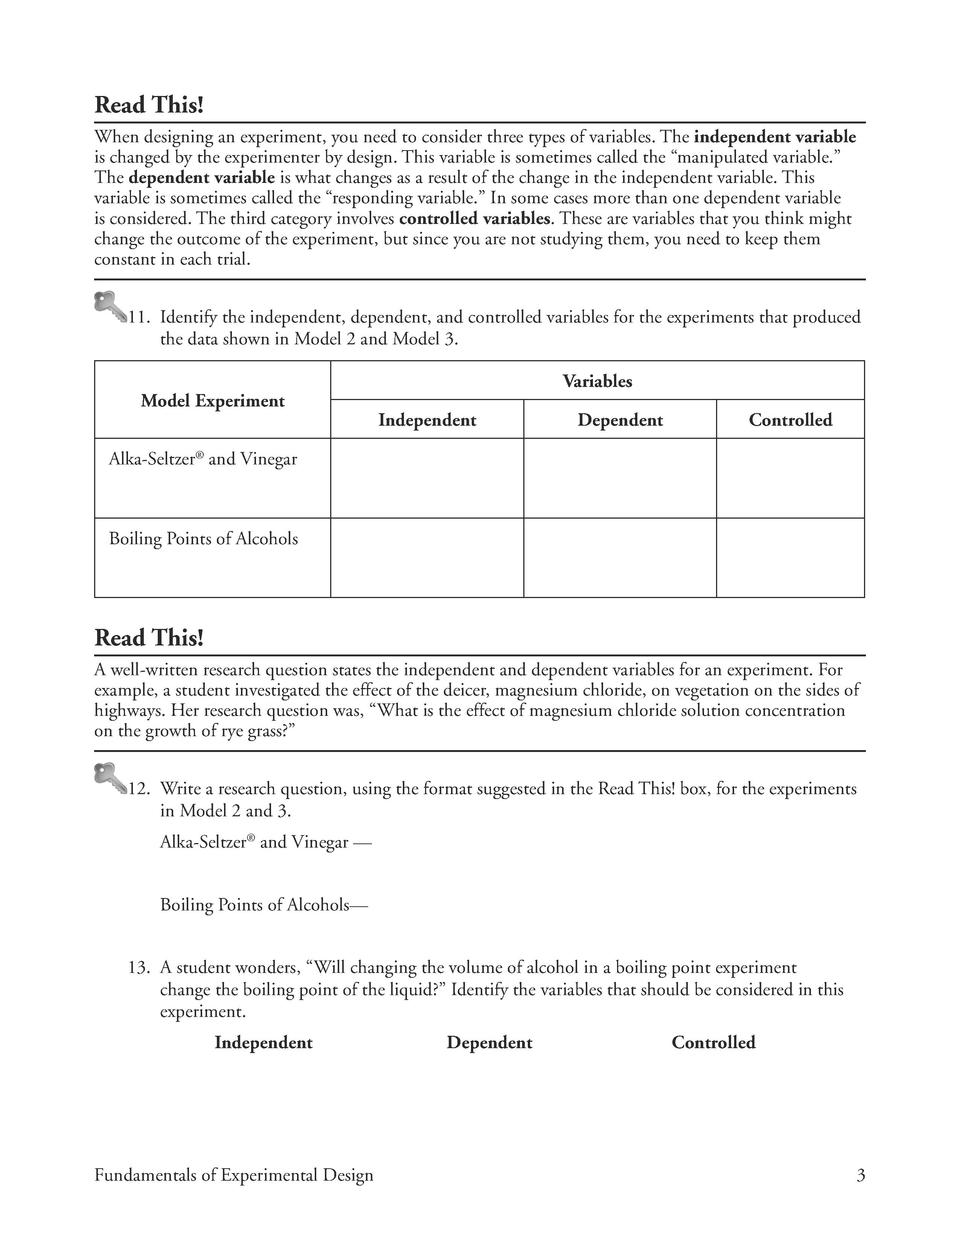 Worksheets Experimental Design Worksheet Scientific Method Answer Key experimental design worksheet free worksheets library download worksheet